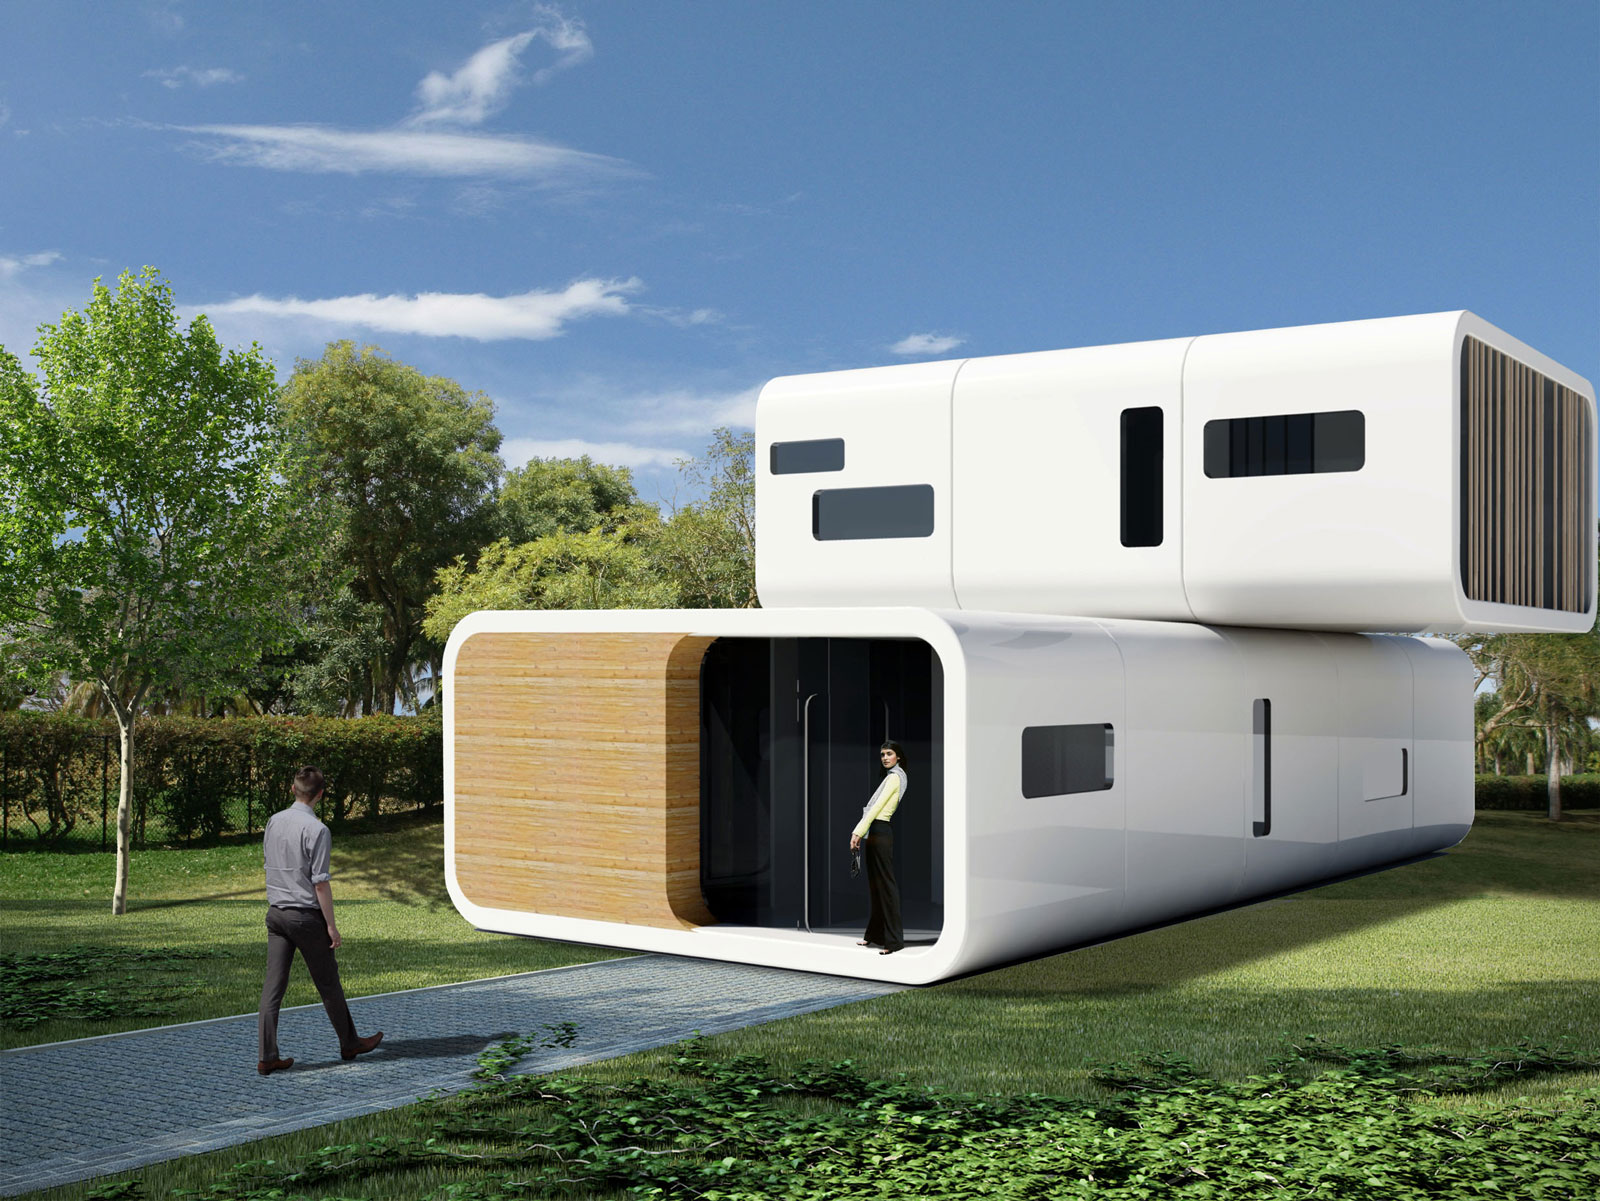 Prefab modular living units by coodo germany for Home de